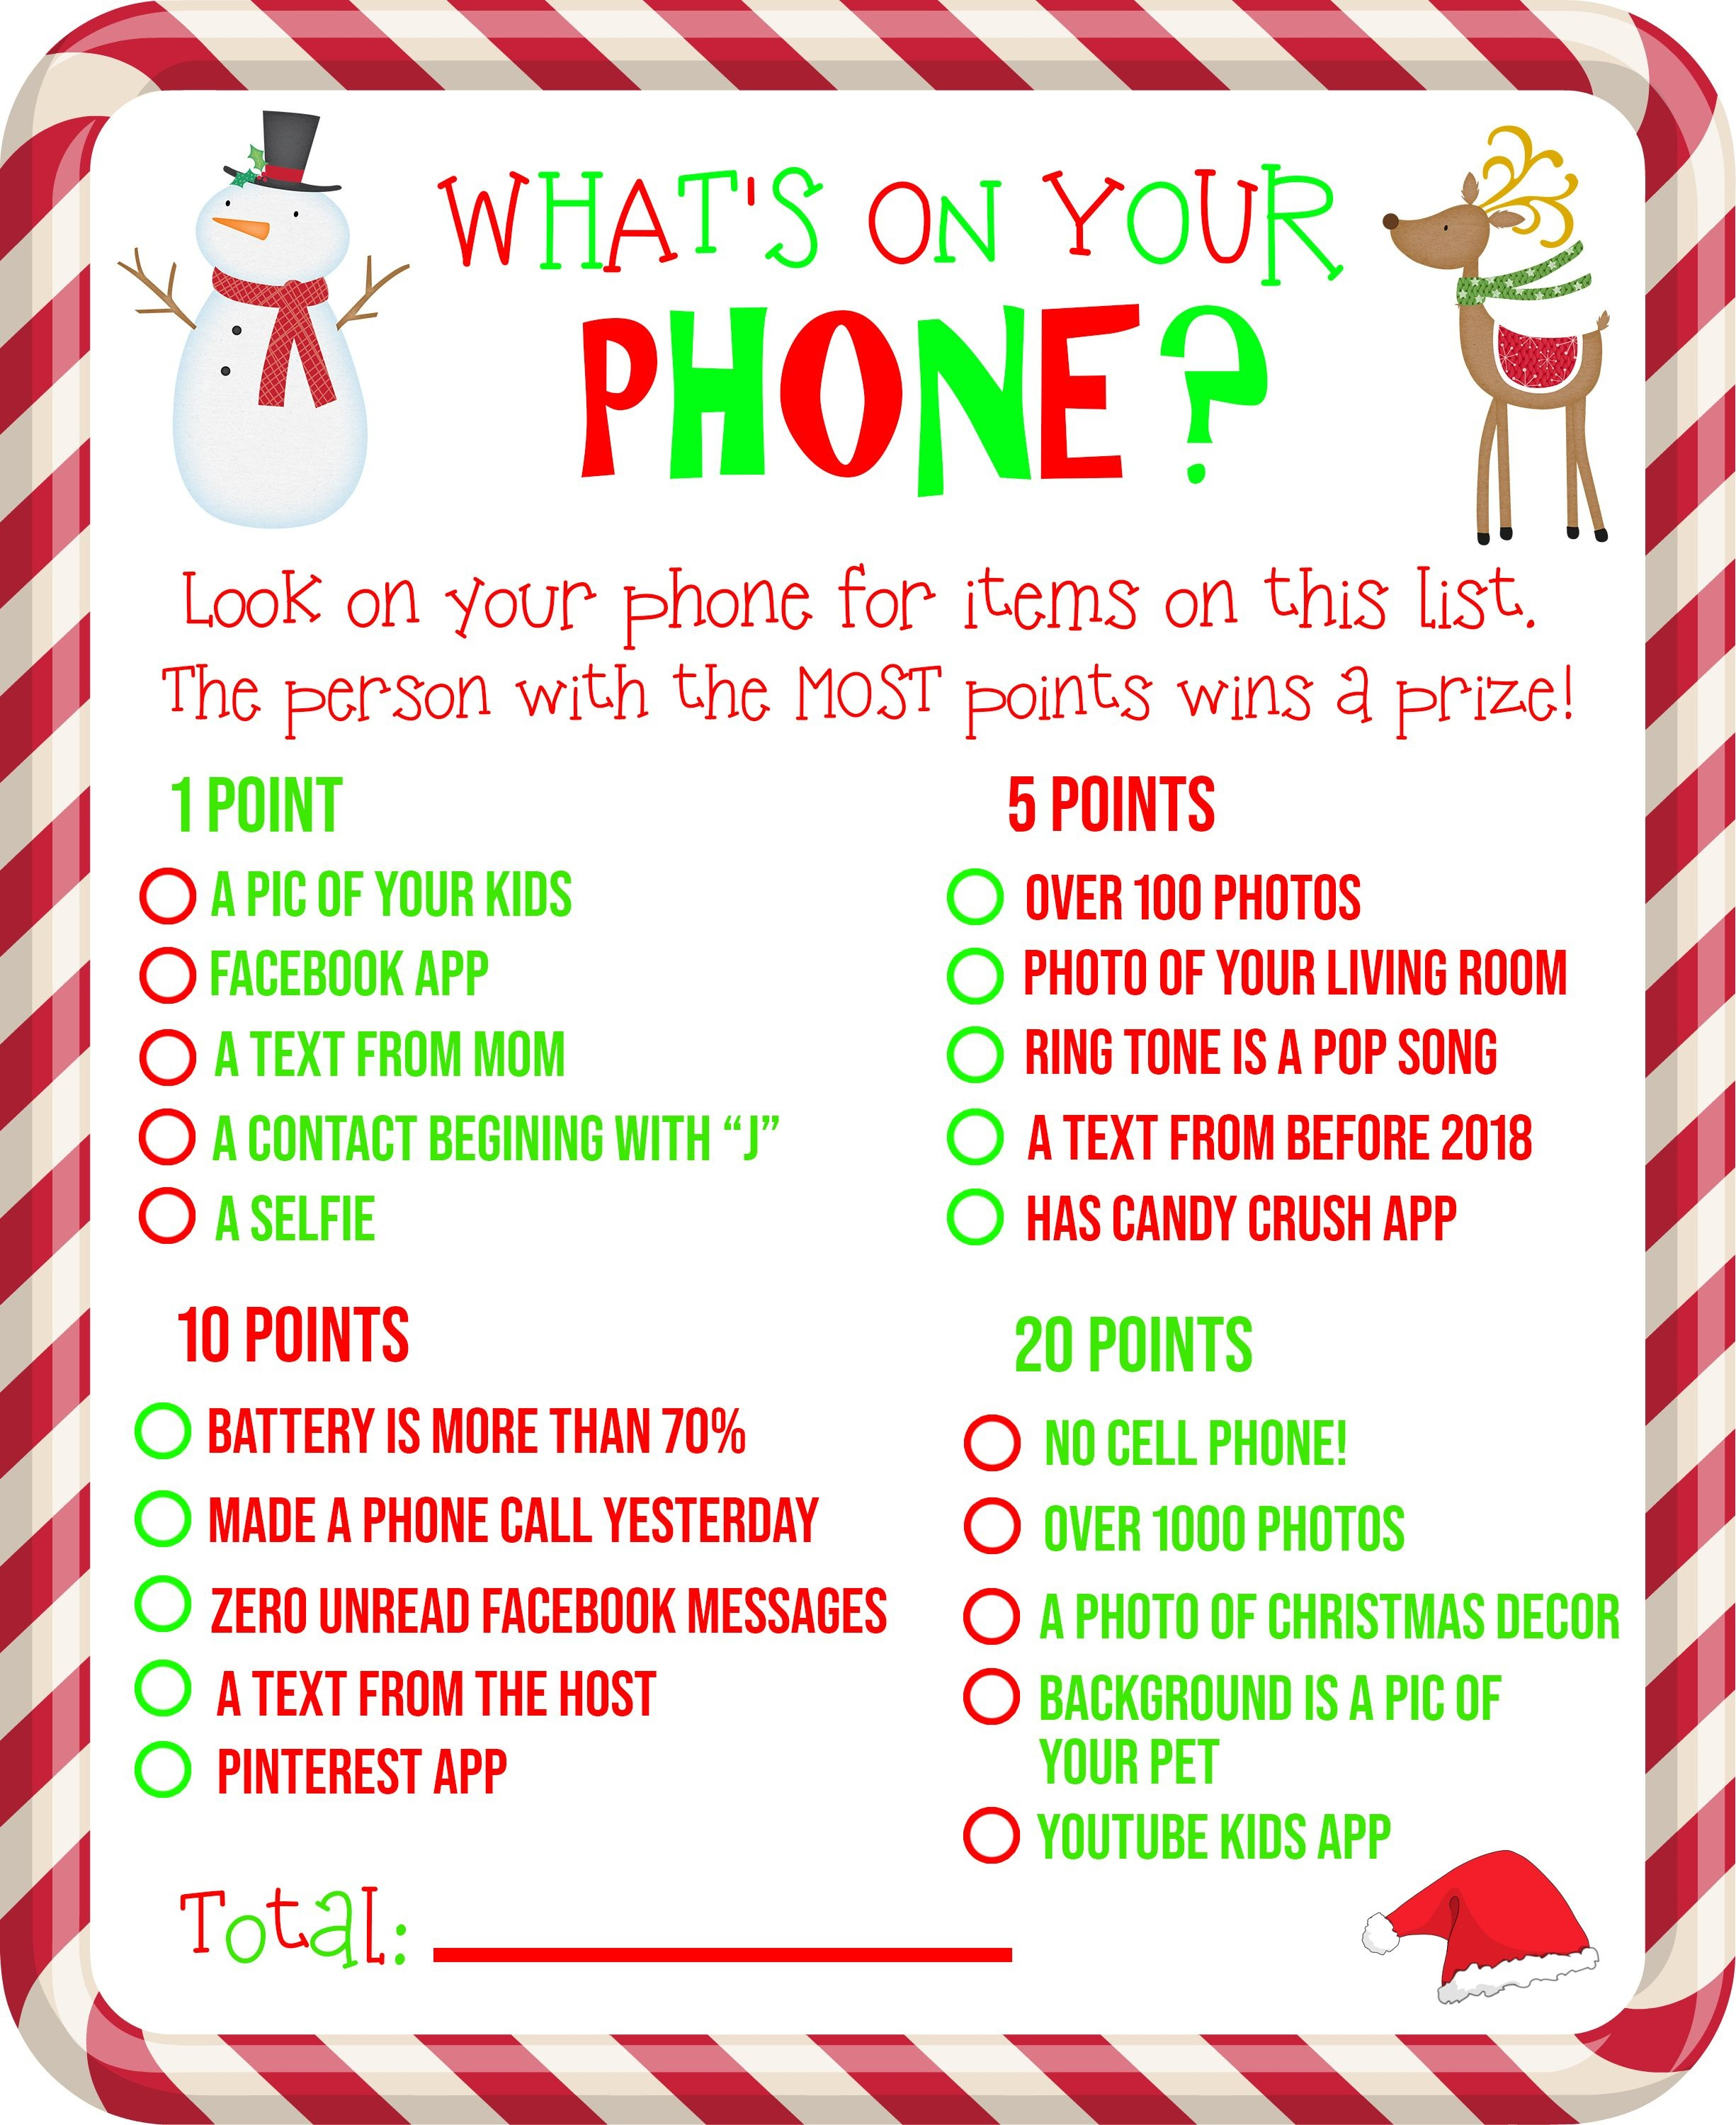 Free Printable! What's On Your Phone Christmas Party Game - Free Games For Christmas That Is Printable